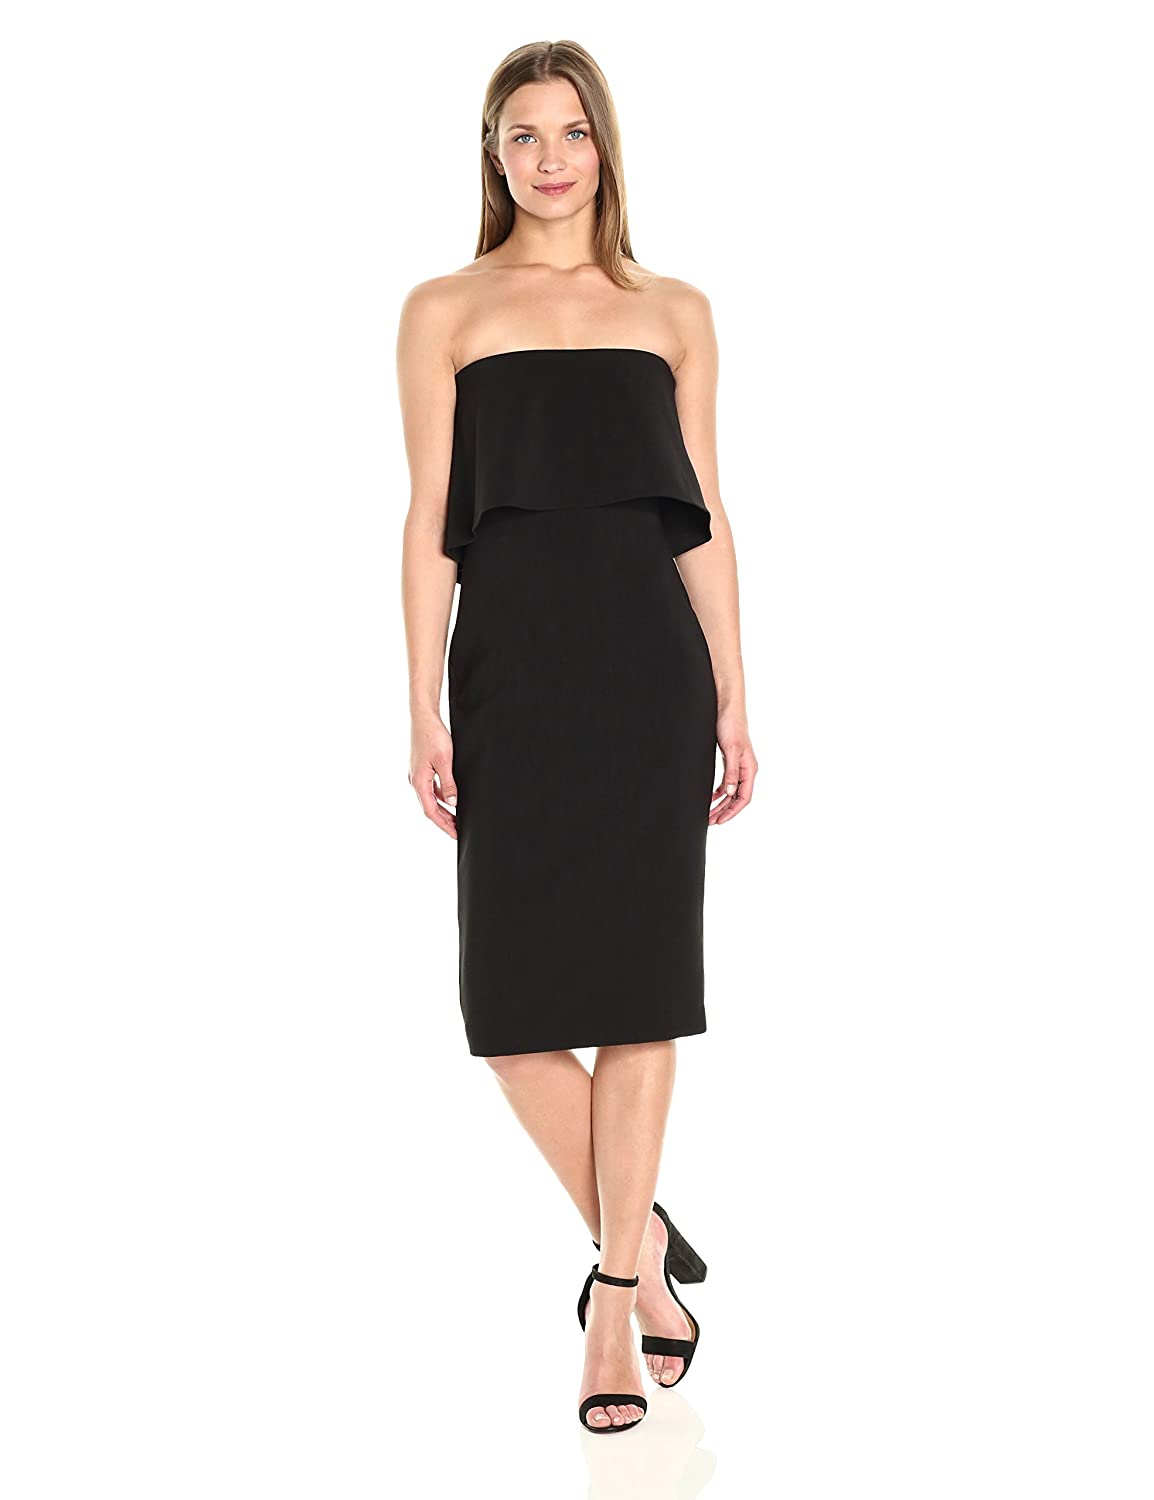 Amazon.com: LIKELY Women\'s Driggs Strapless Dress: Clothing